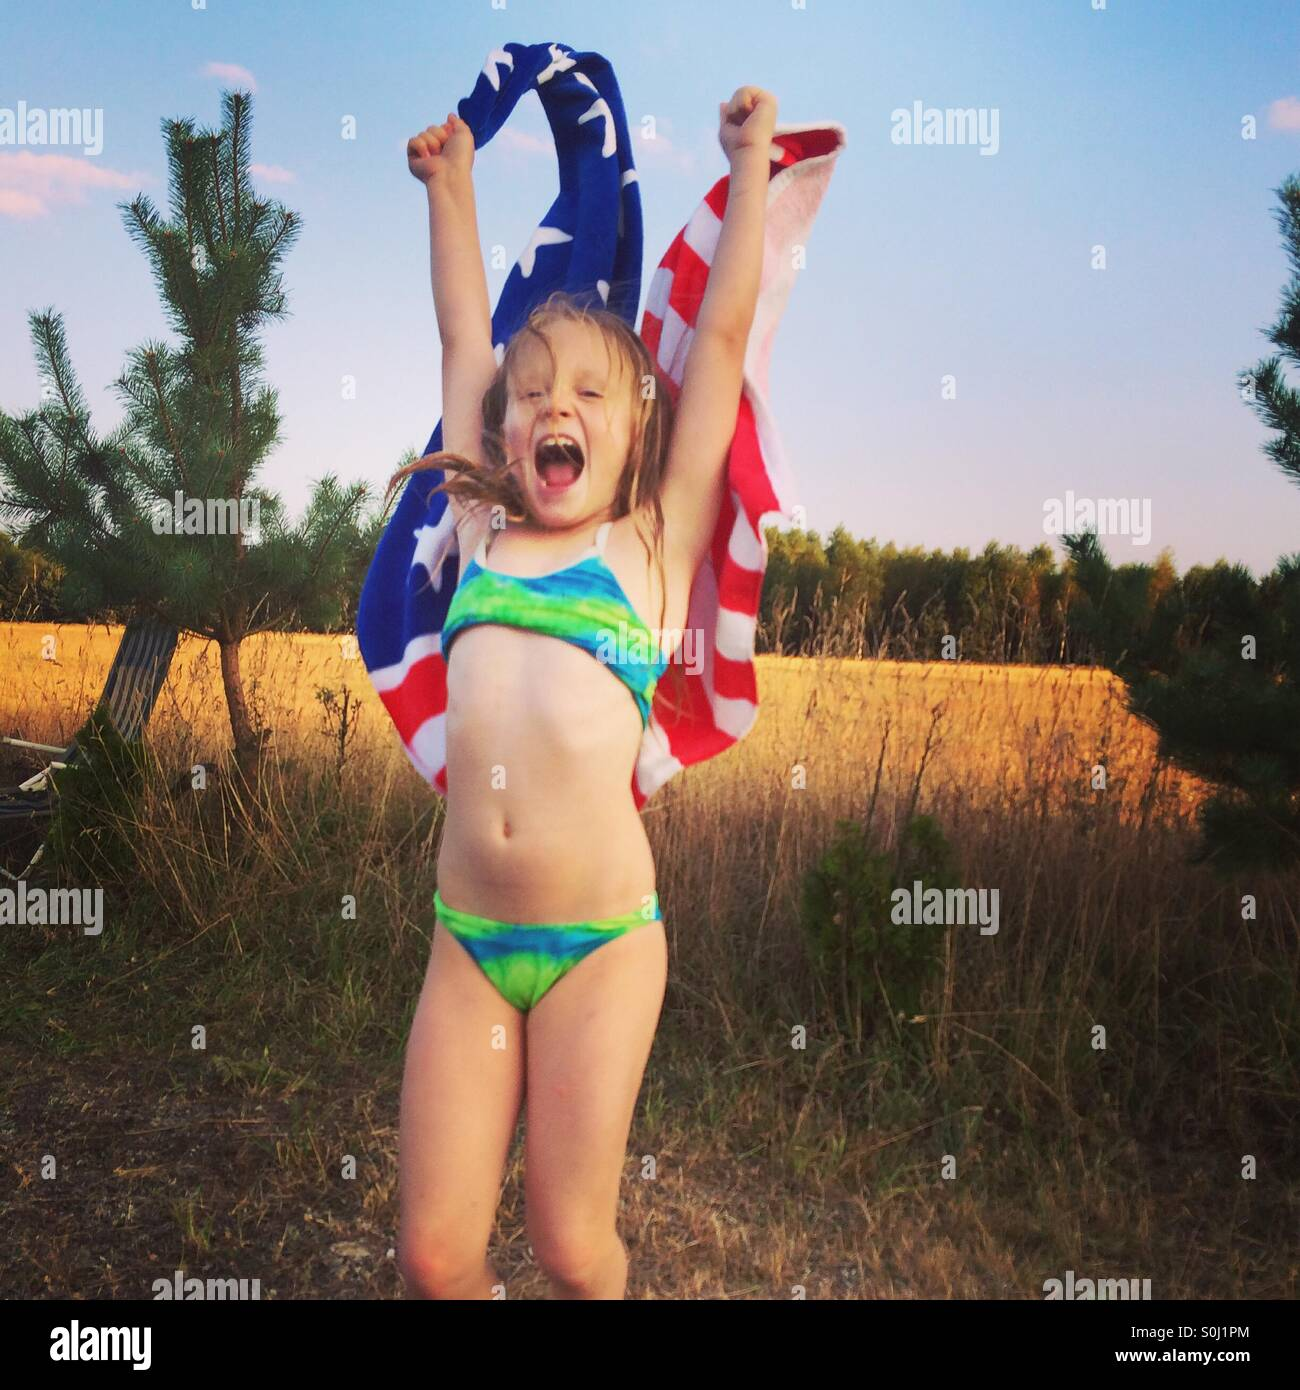 Girl jumping with a flag beach towel - Stock Image